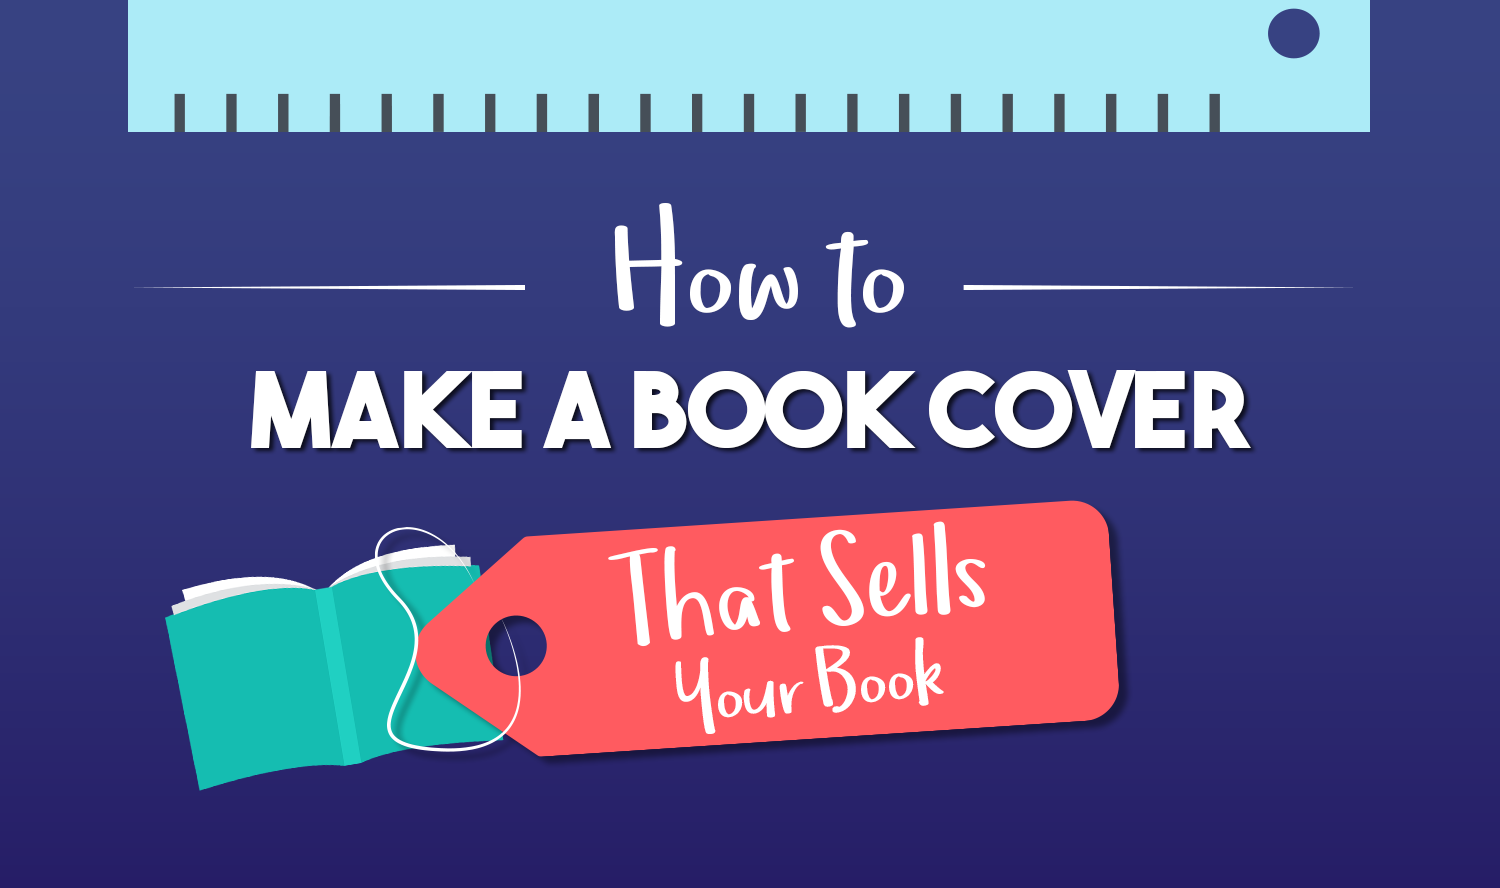 How to Make a Book Cover That Sells Your Book – The 3 Things You Need to Know (Infographic)